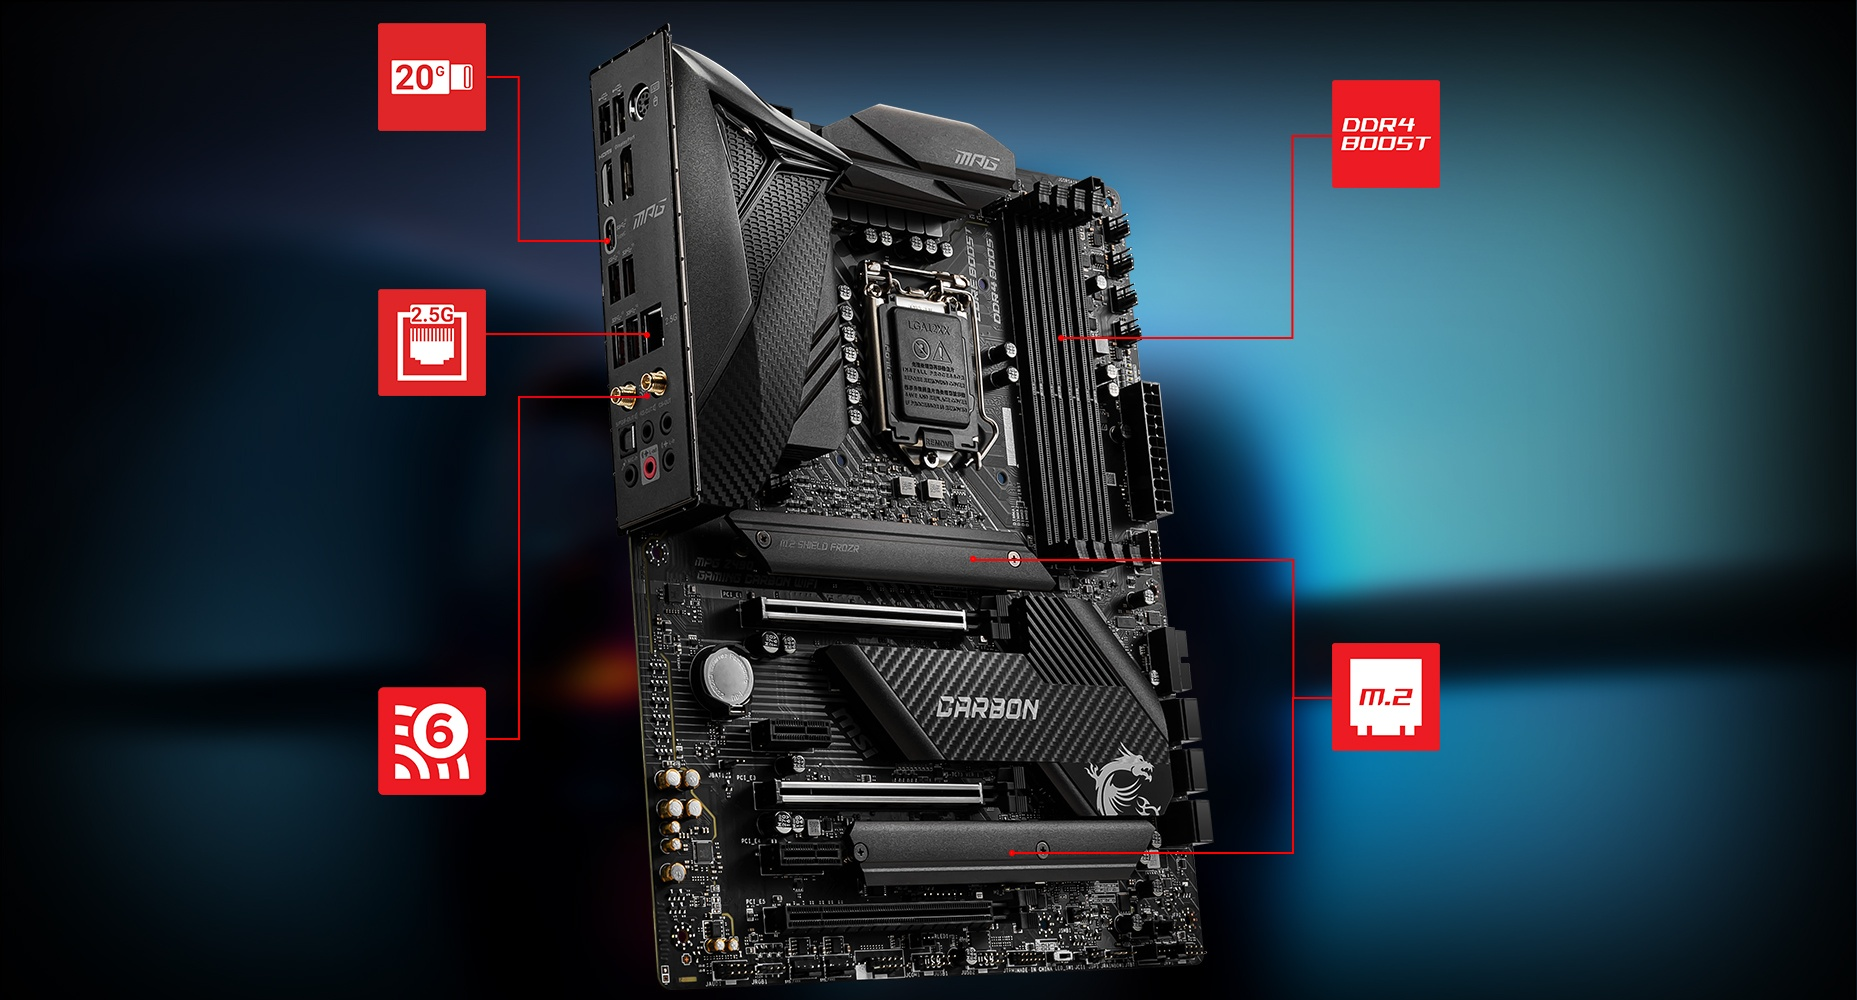 MSI MPG Z490 GAMING CARBON WIFI LIGHTNING overview